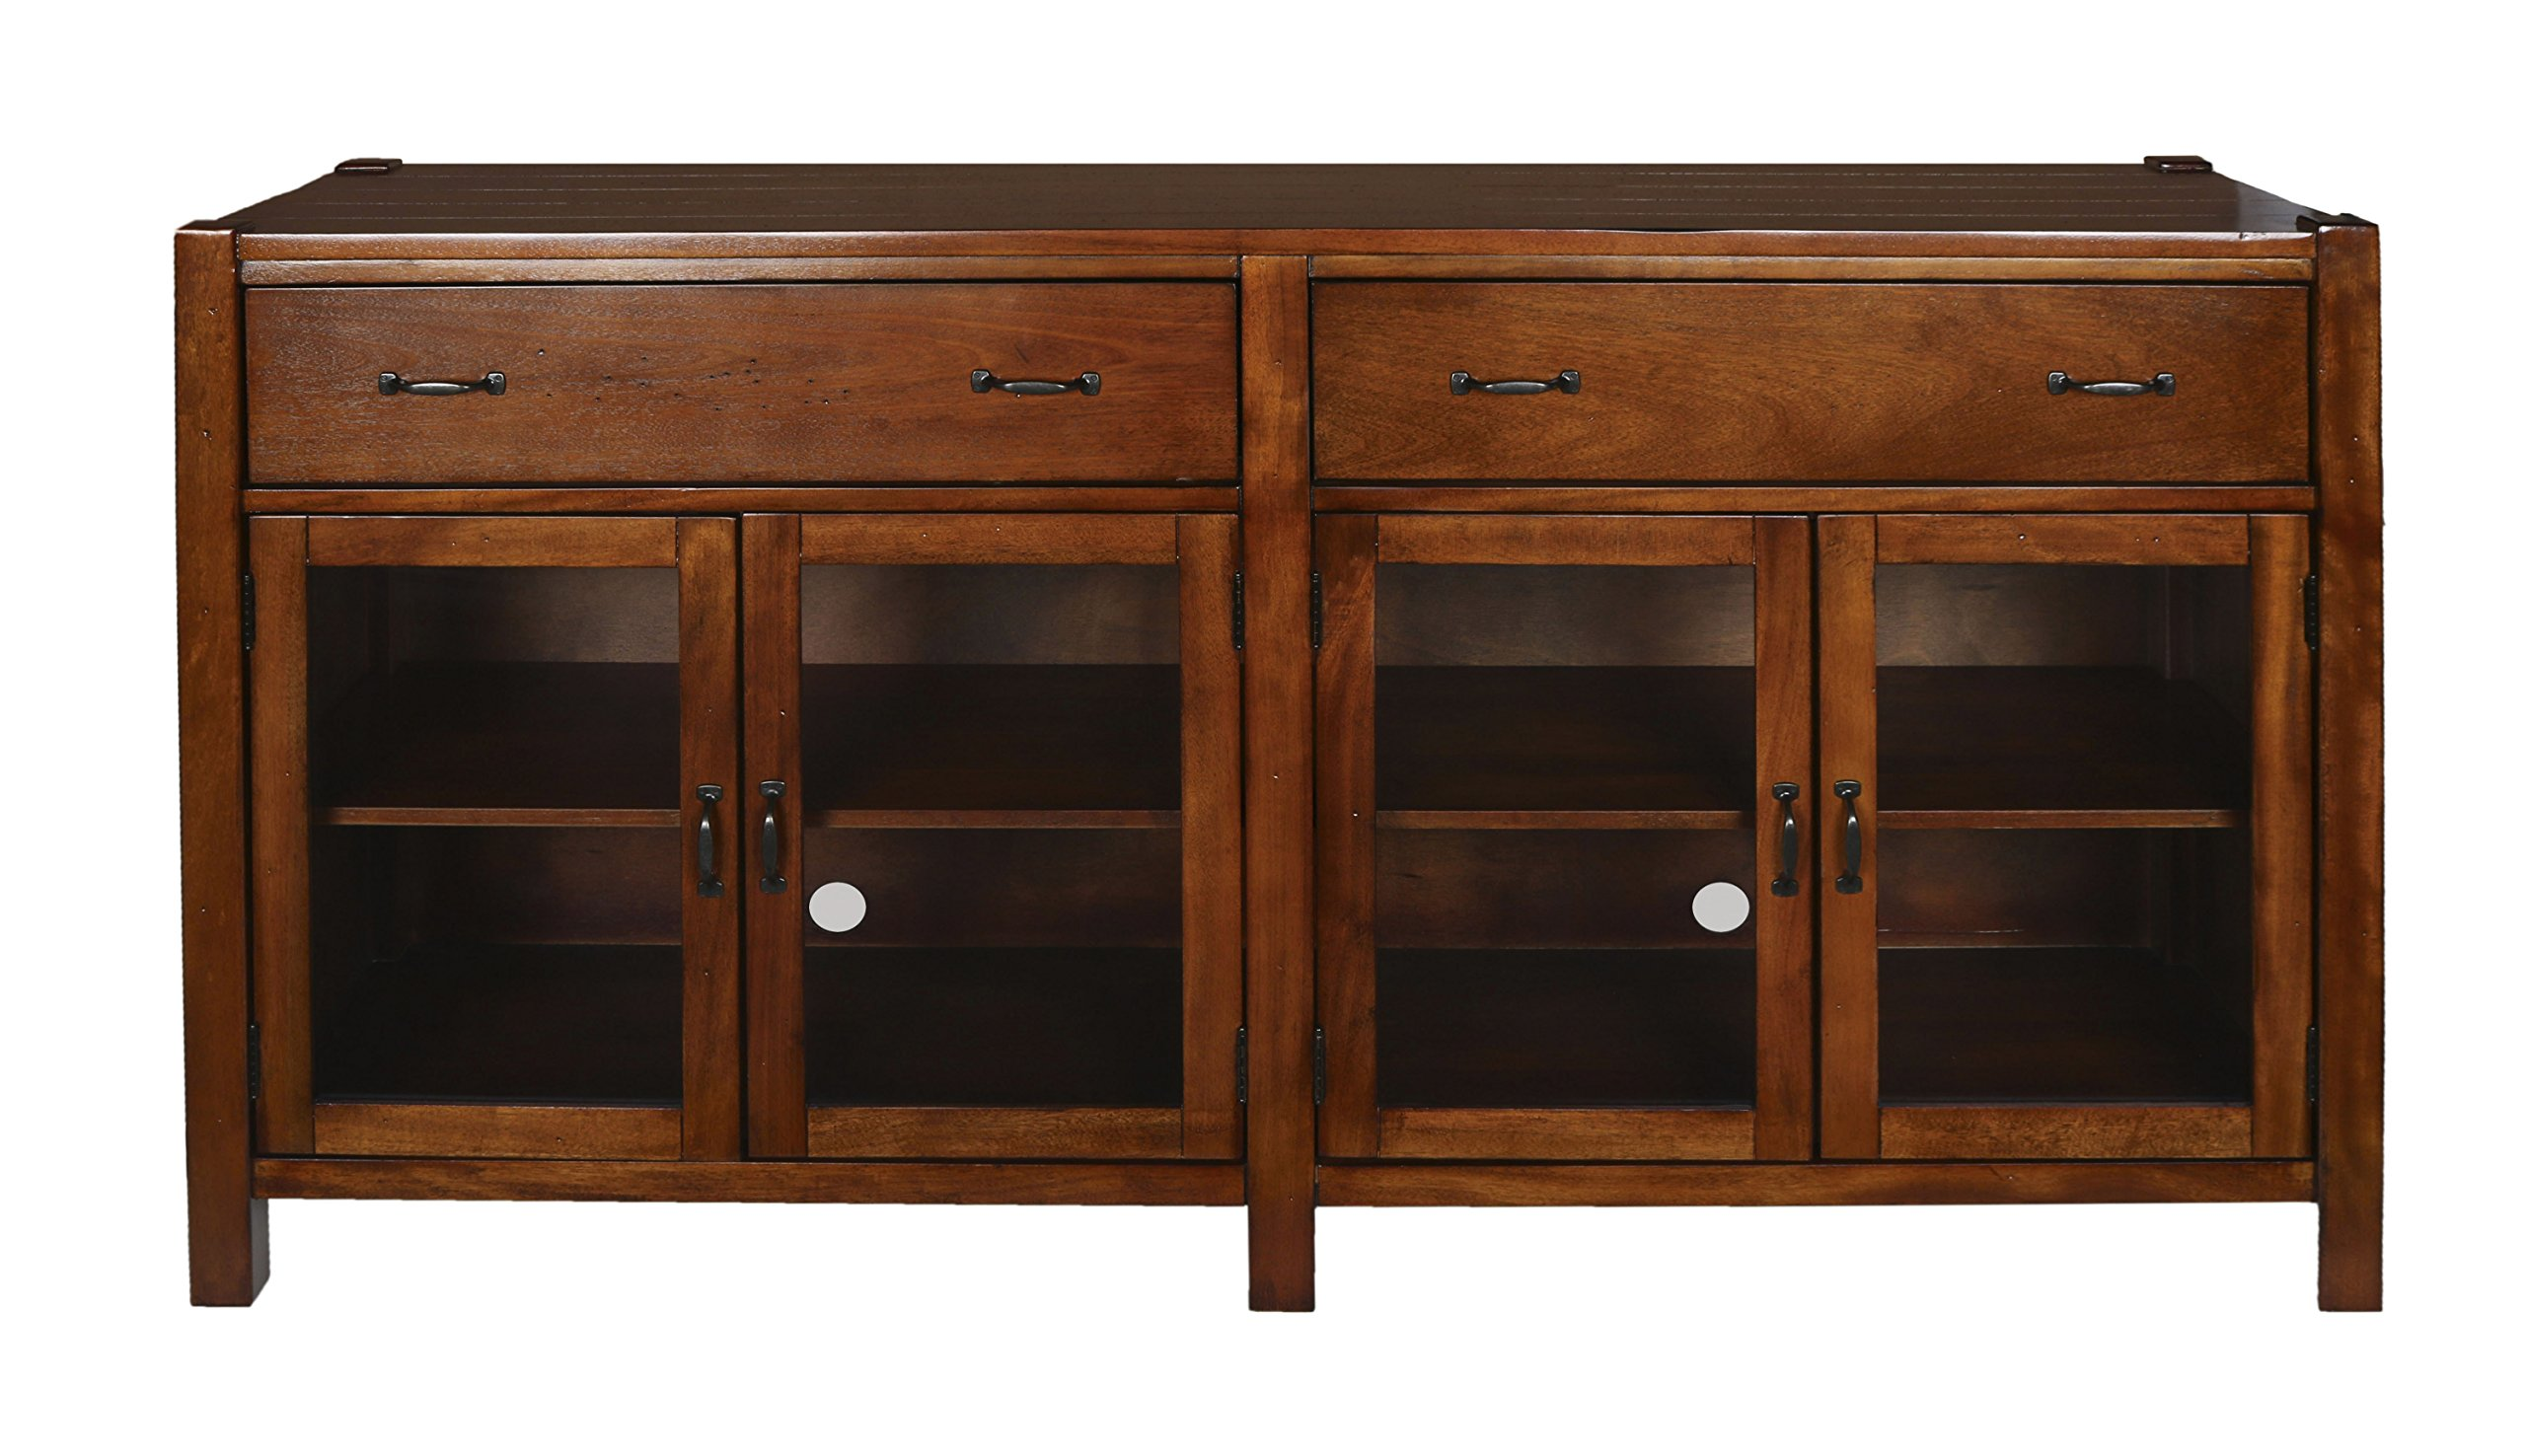 New Classic Furniture Giverny Entertainment Console, 65-Inch, African Honey by New Classic FURNITURE